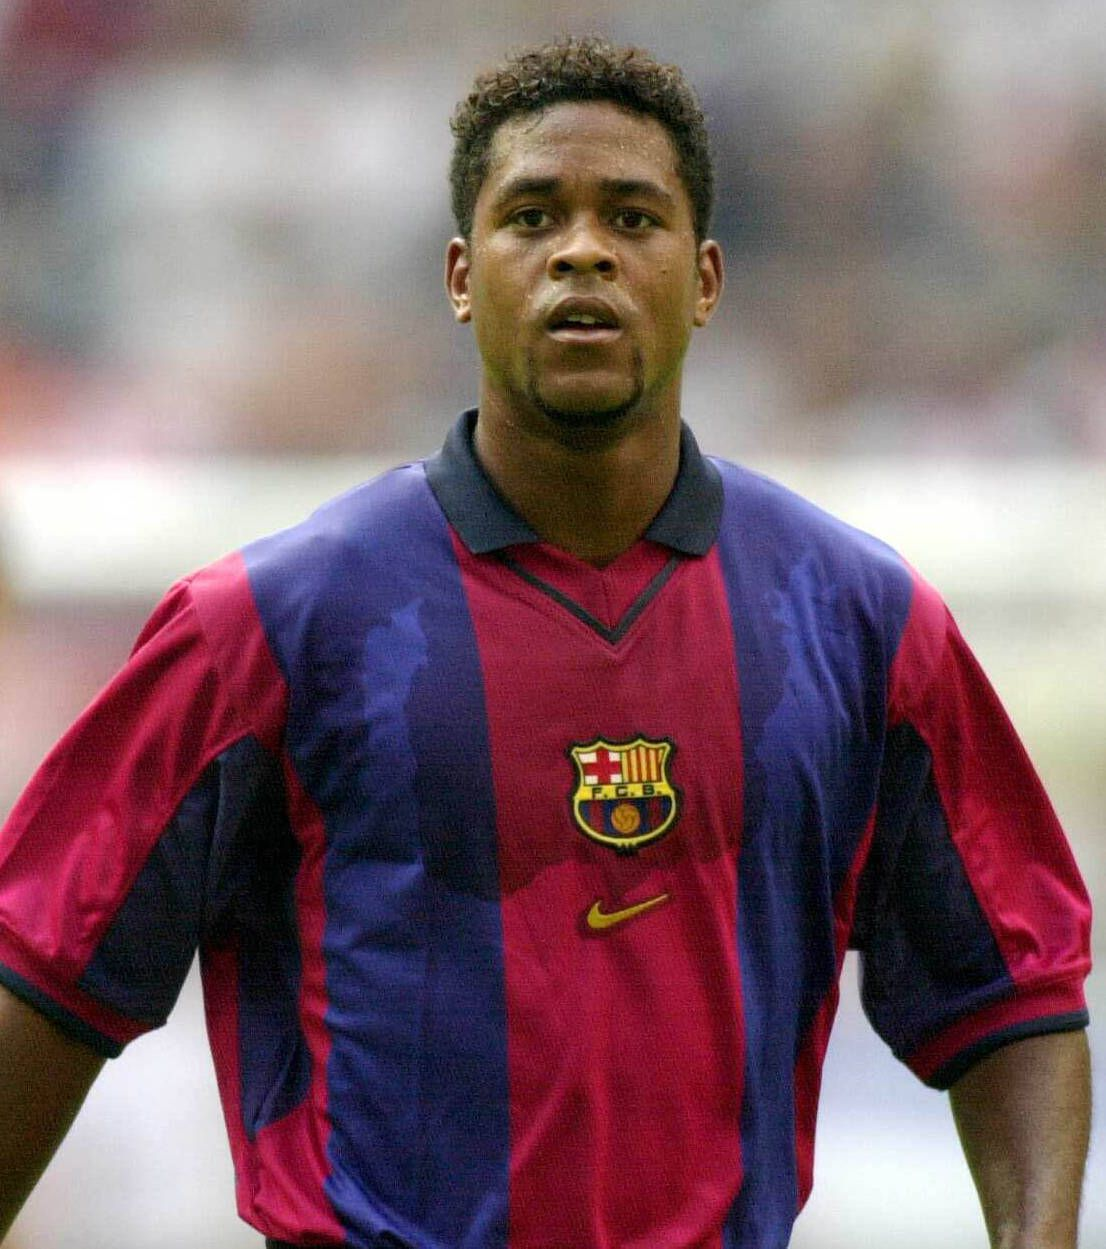 Patrick Kluivert Is A Former Dutch Football Player Who Is